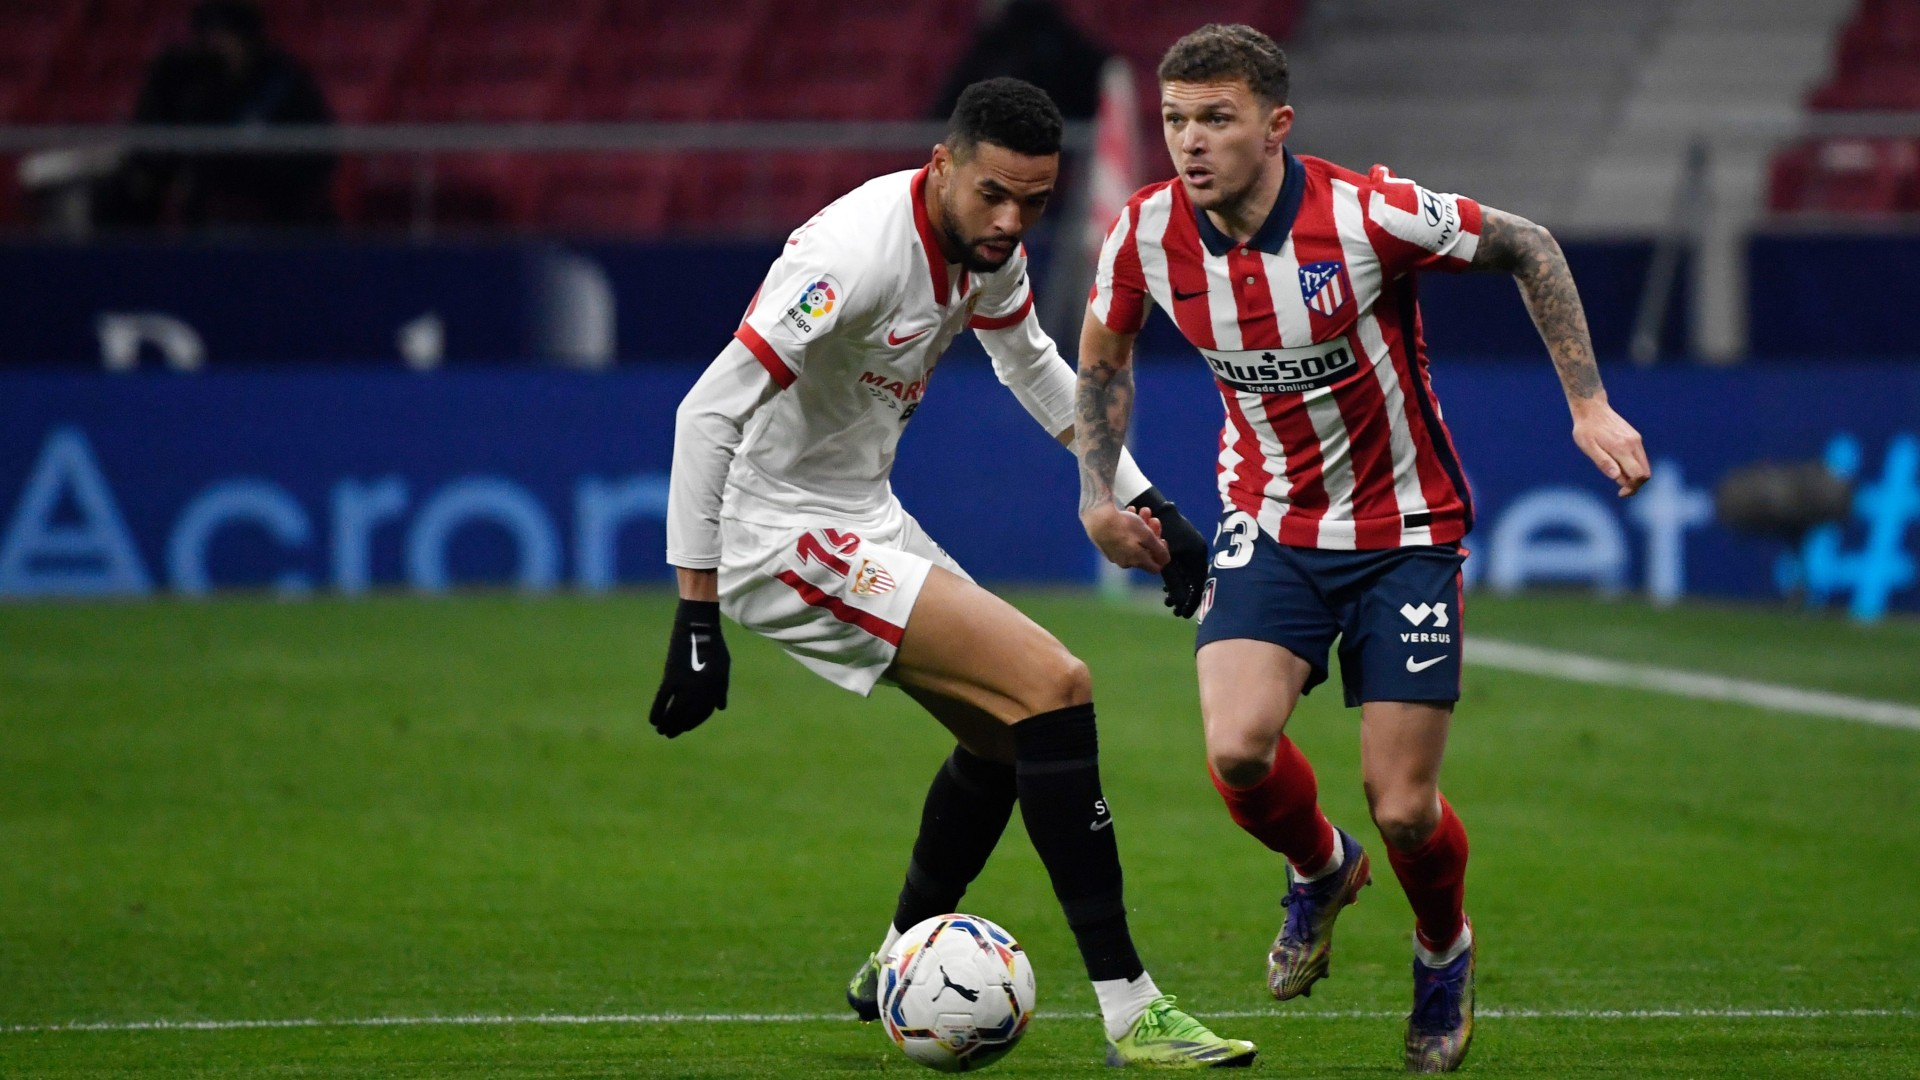 Trippier starts for Atletico Madrid for first time since betting ban suspended by FIFA